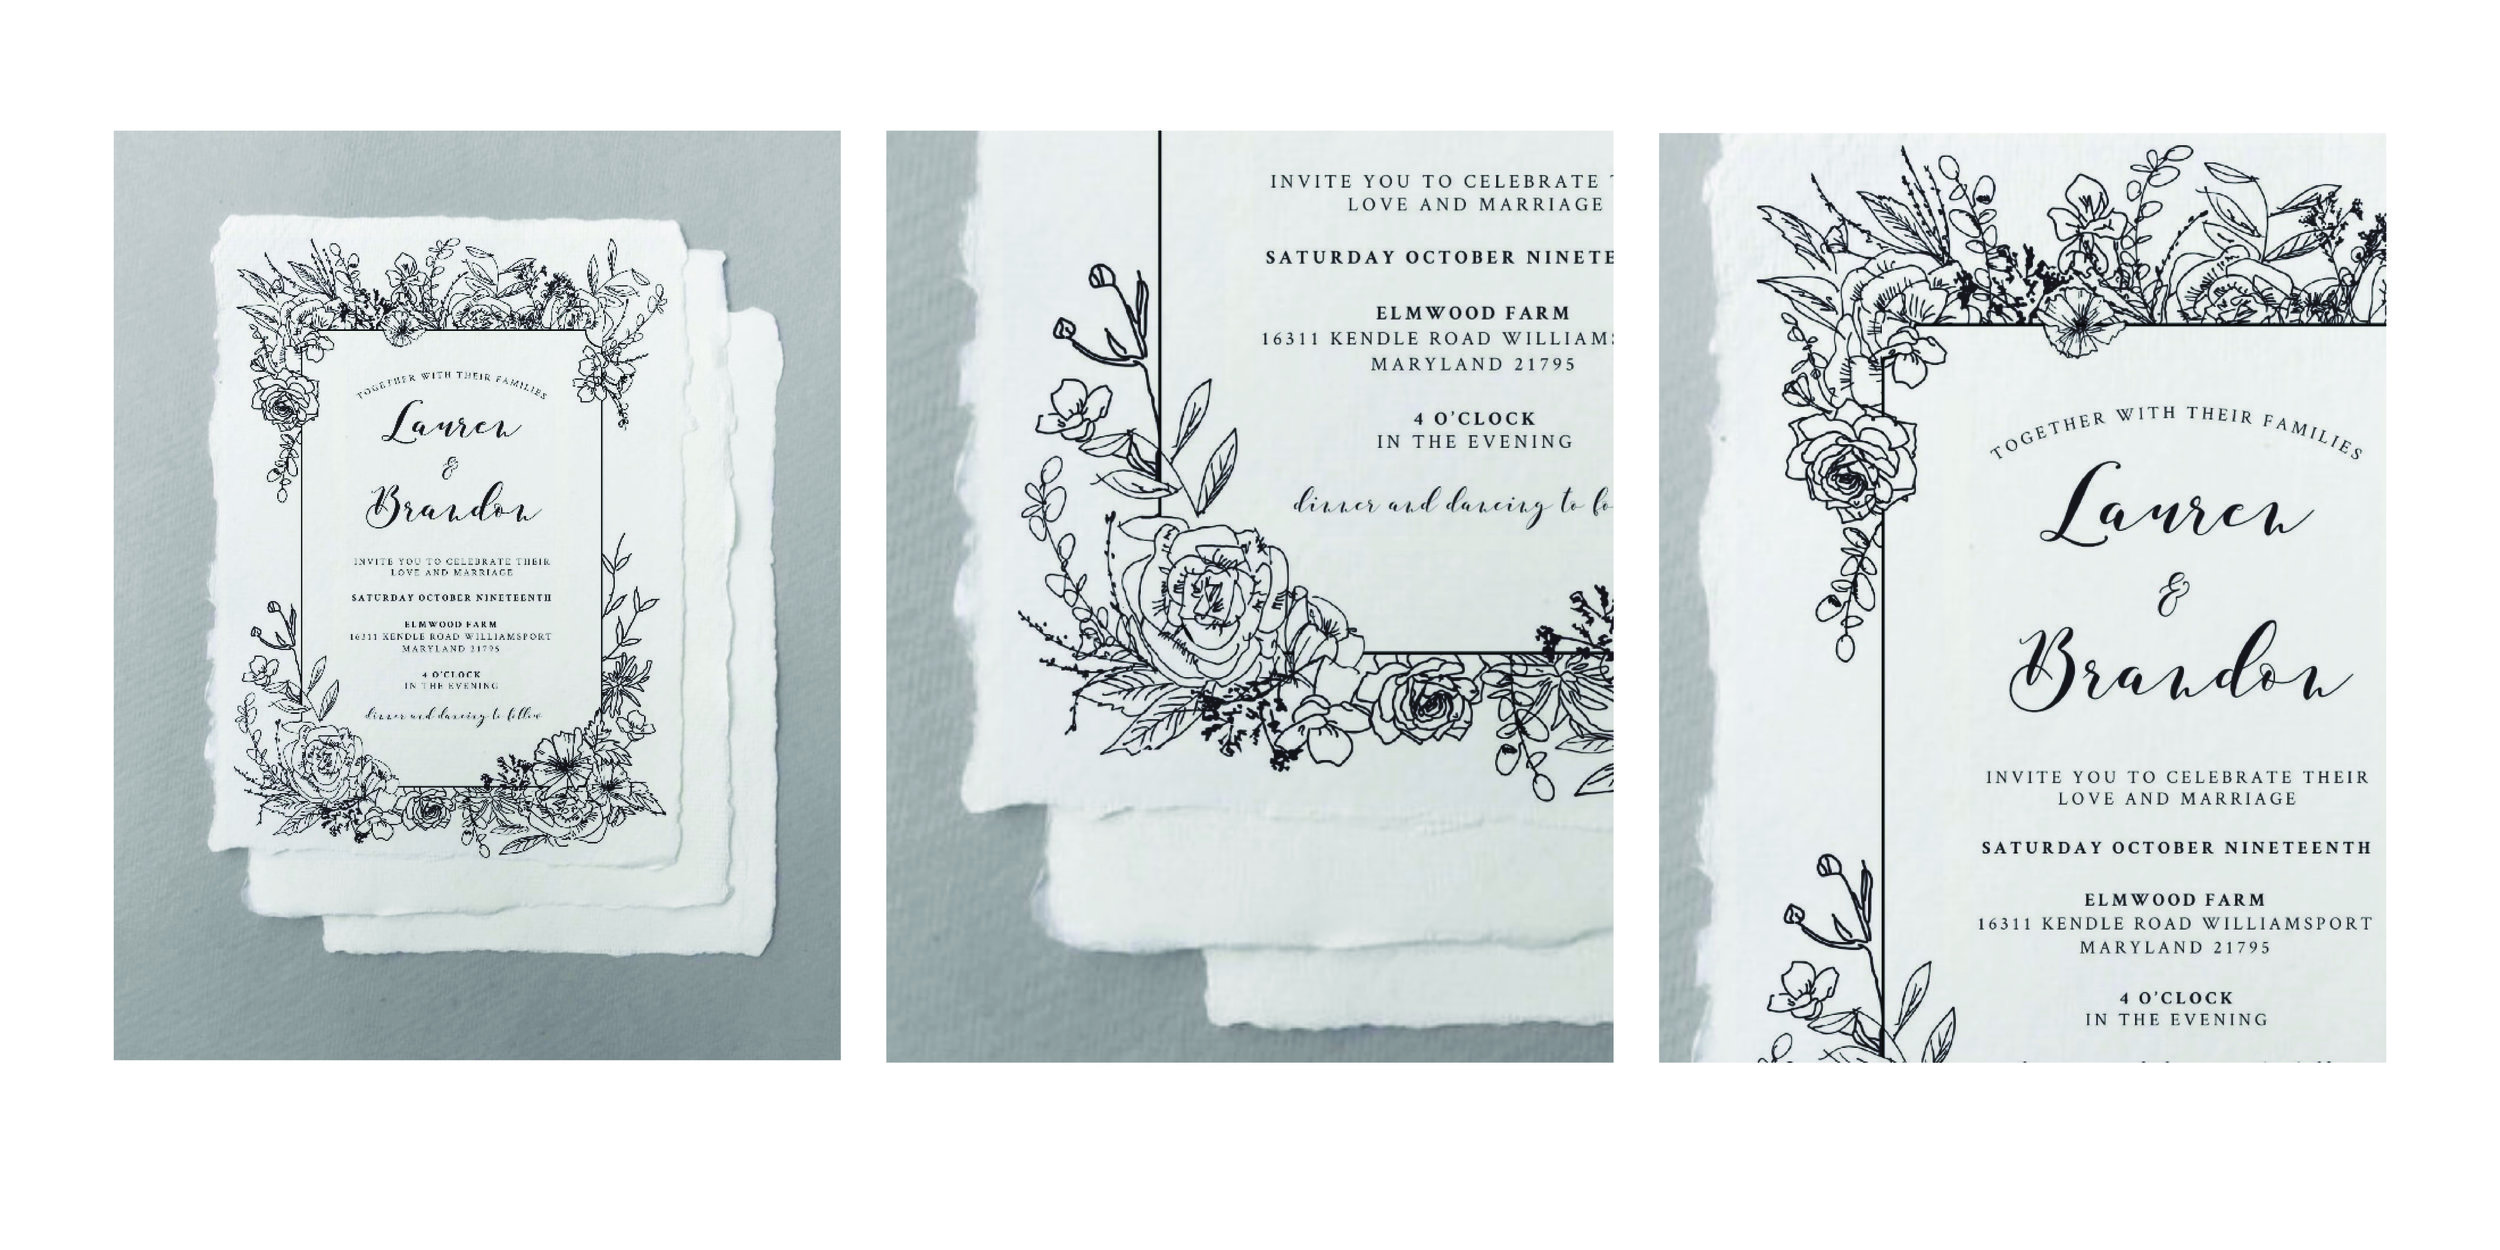 a whimsical commission wedding invitation with hand illustrated botanicals, deckled edges, and a meeting of romantic and rustic type to encompass both the bride and groom in design.